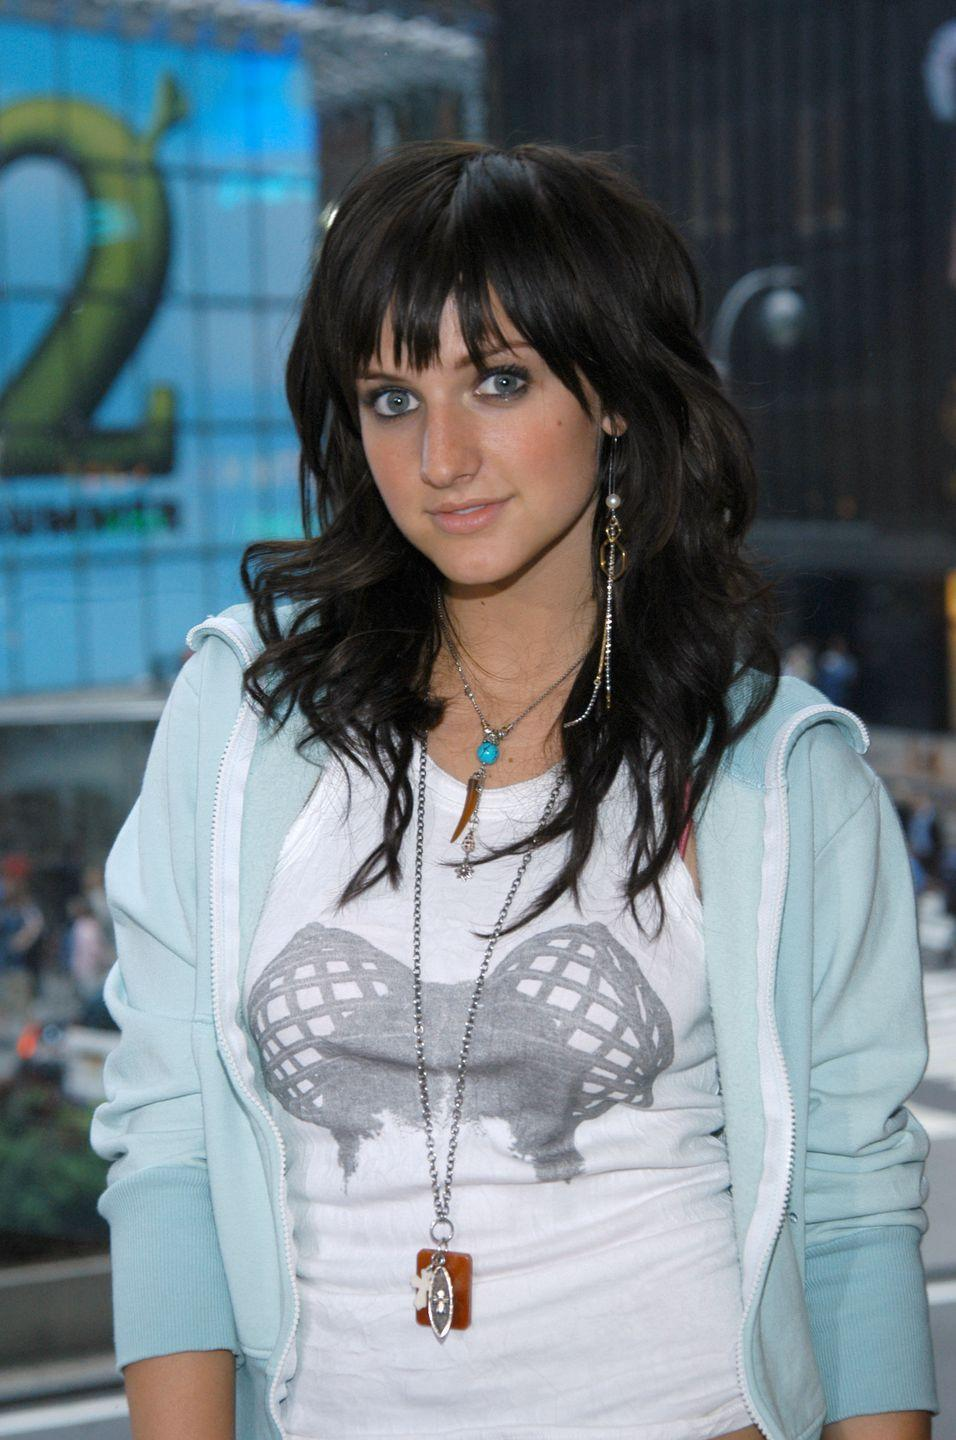 <p>Speaking of the Simpsons, the success of her older sister Jessica prompted Ashlee to join the reality TV front in 2004. <em>The Ashlee Simpson Show</em> documented her journey to becoming a pop star in her own right. The series lasted several seasons and served as the perfect soundboard for Ashlee to come out from underneath her sister's shadow.</p>